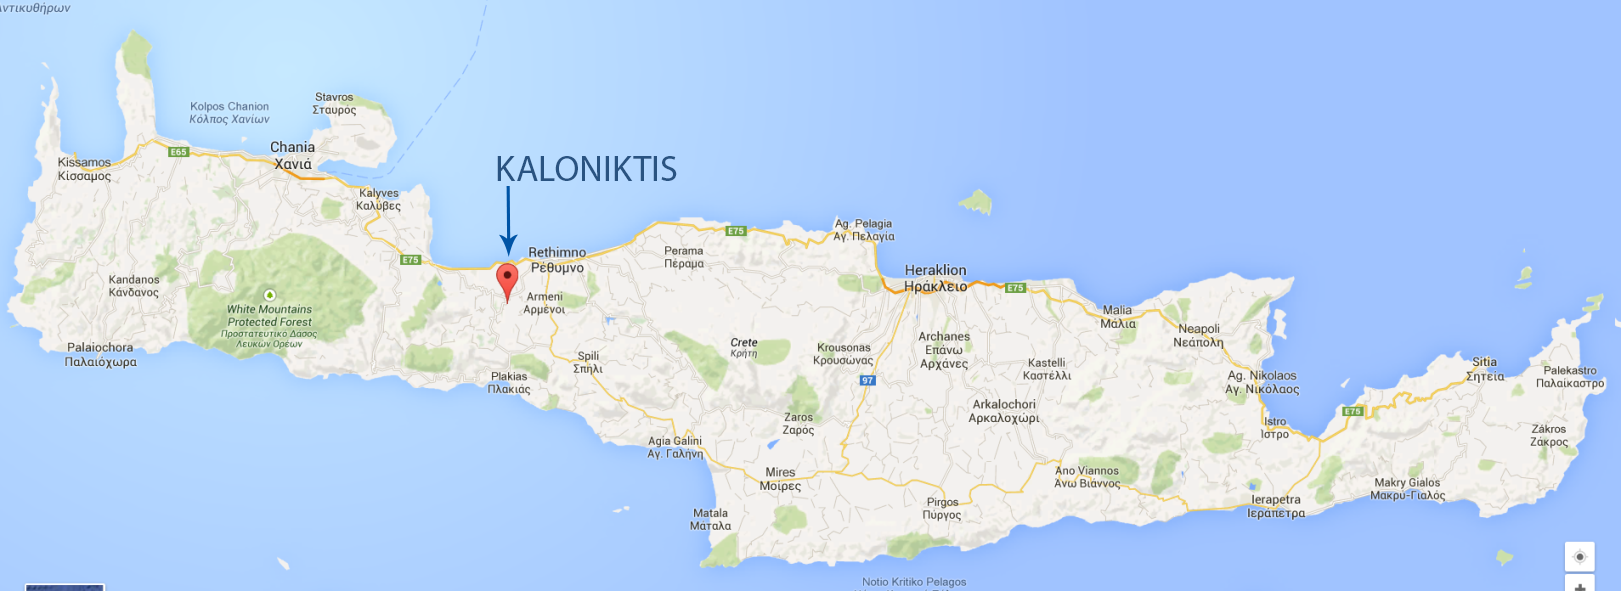 1a KALONIKTIS MAP